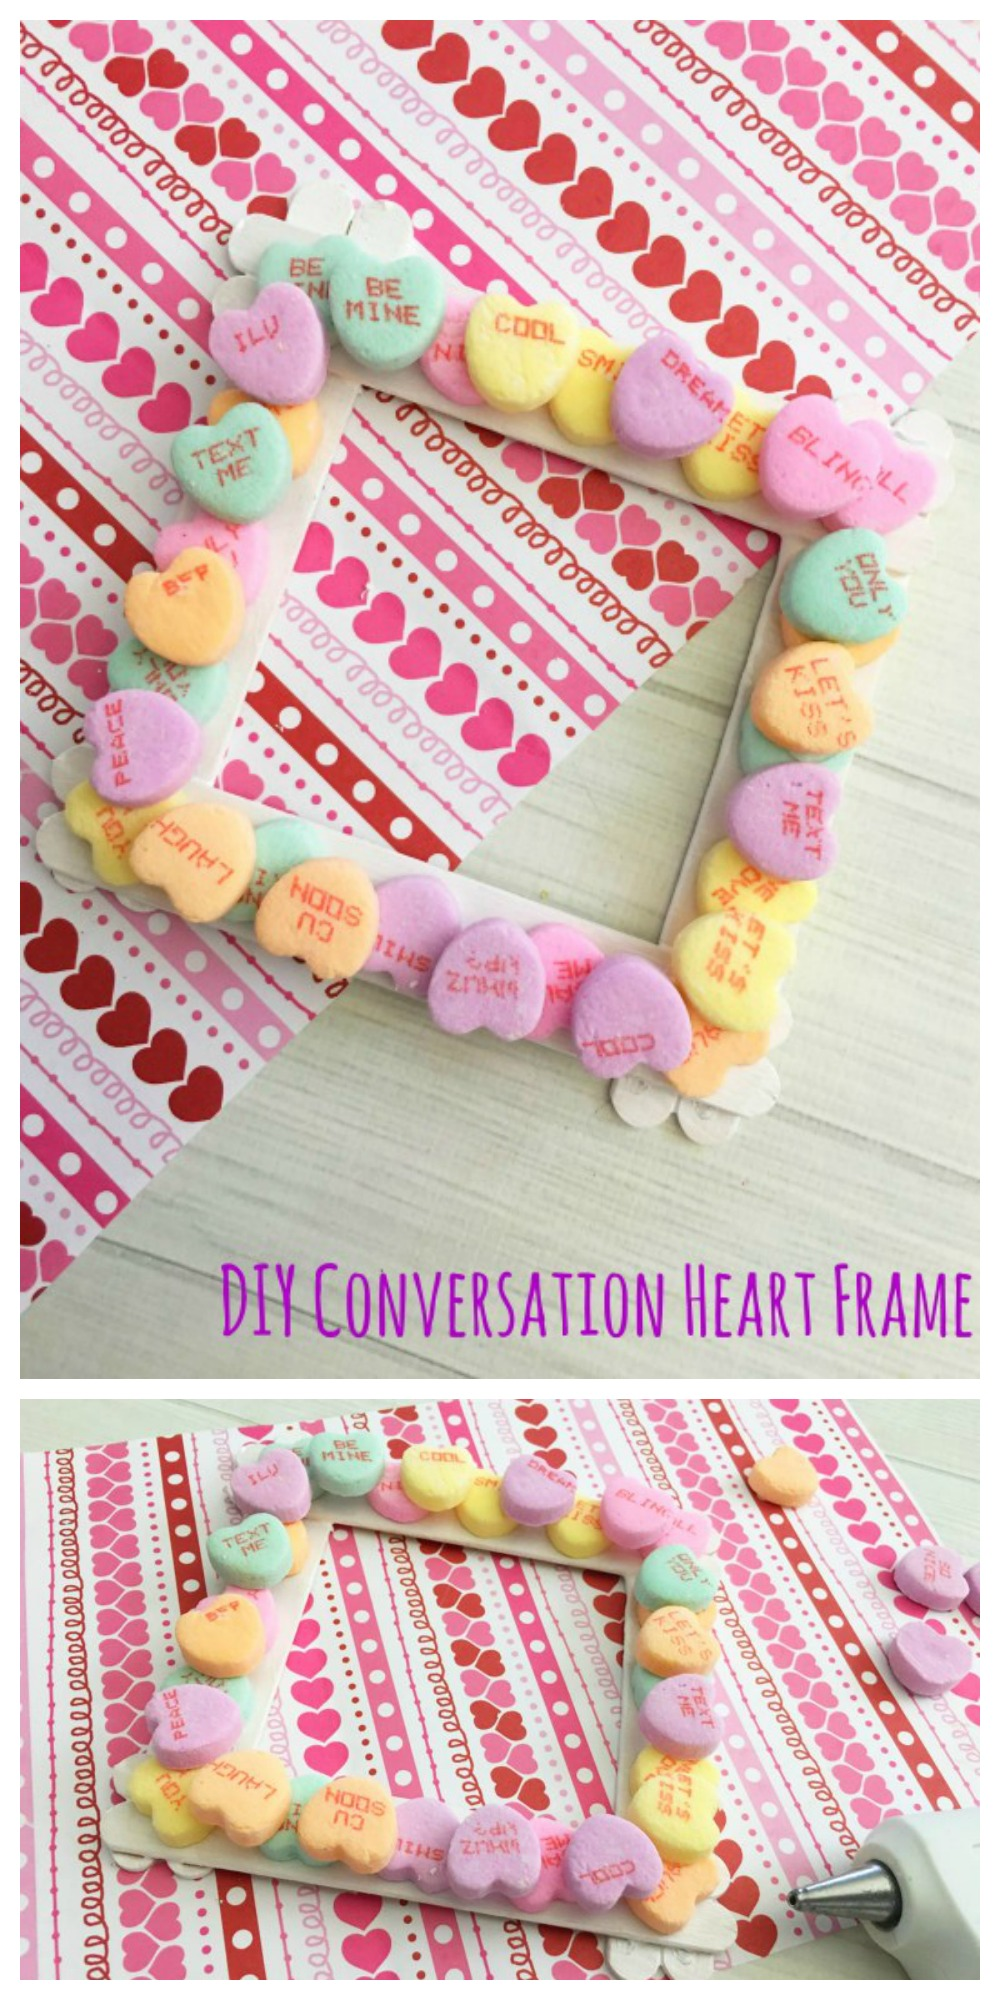 This DIY Conversation Heart Frame is an awesome way to decorate your home or work-space for Valentine's Day! It's easy to make and it's super cute, too!